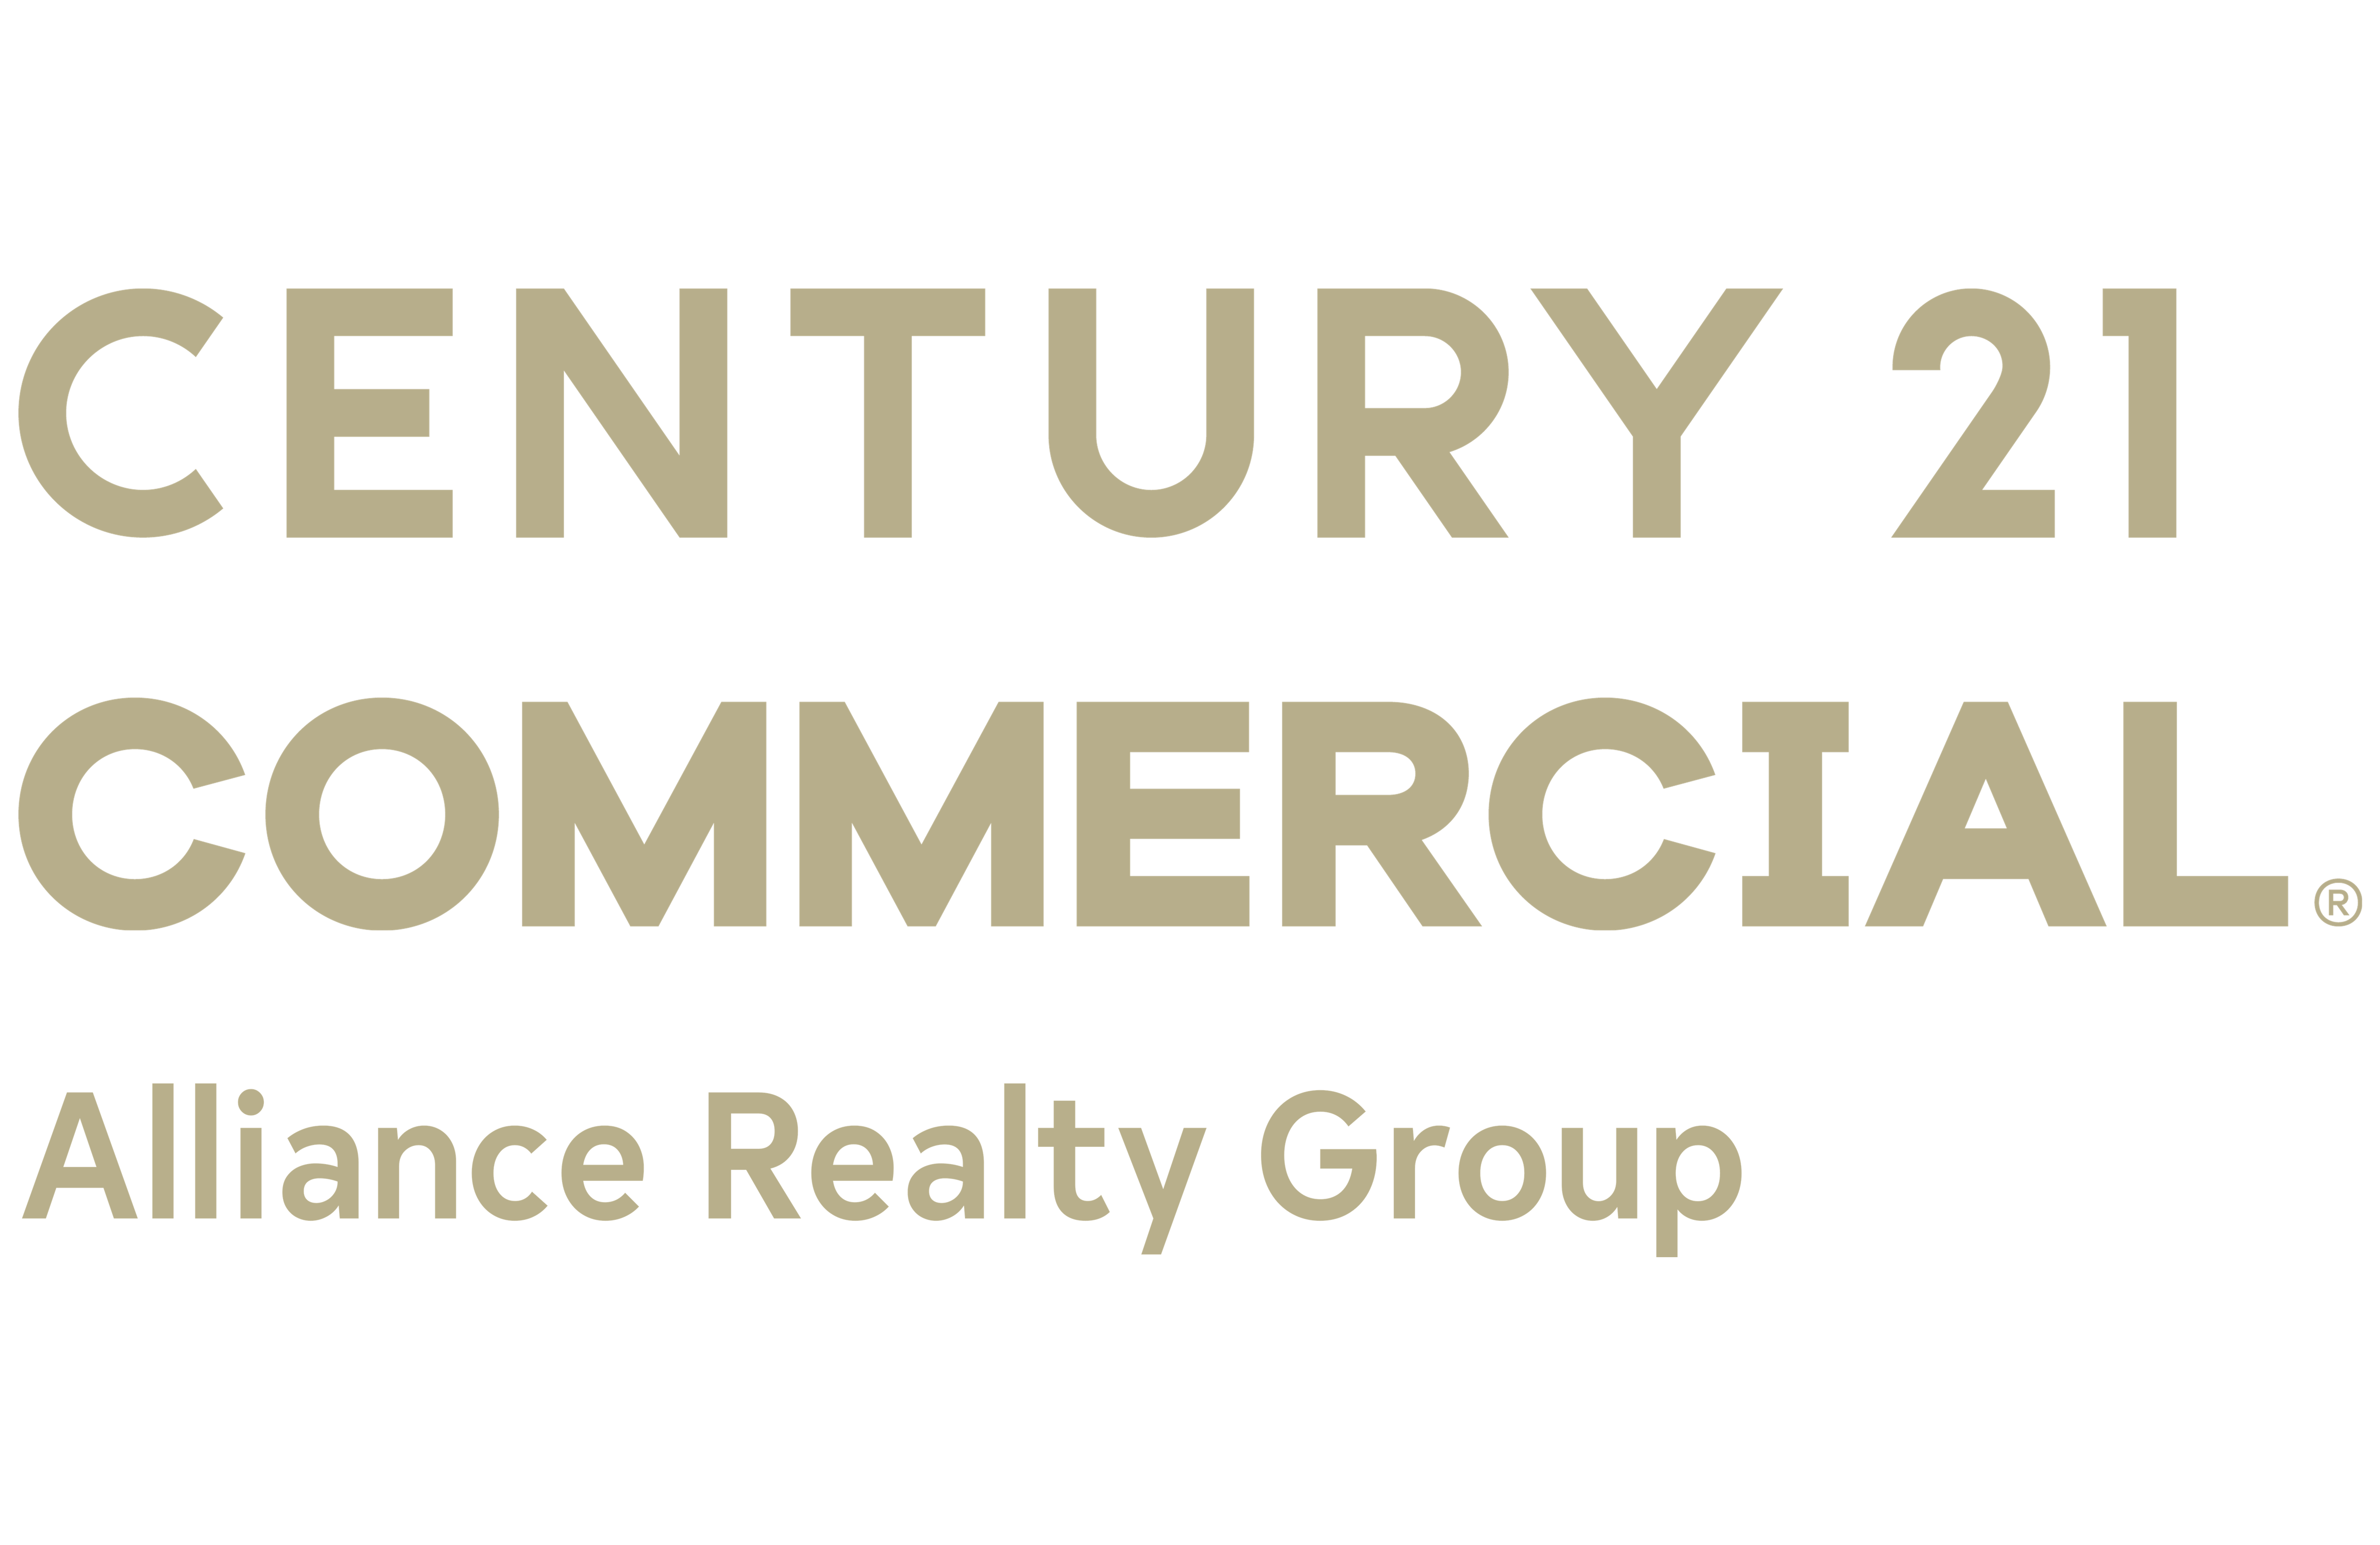 John DeMarco of CENTURY 21 Alliance Realty Group logo